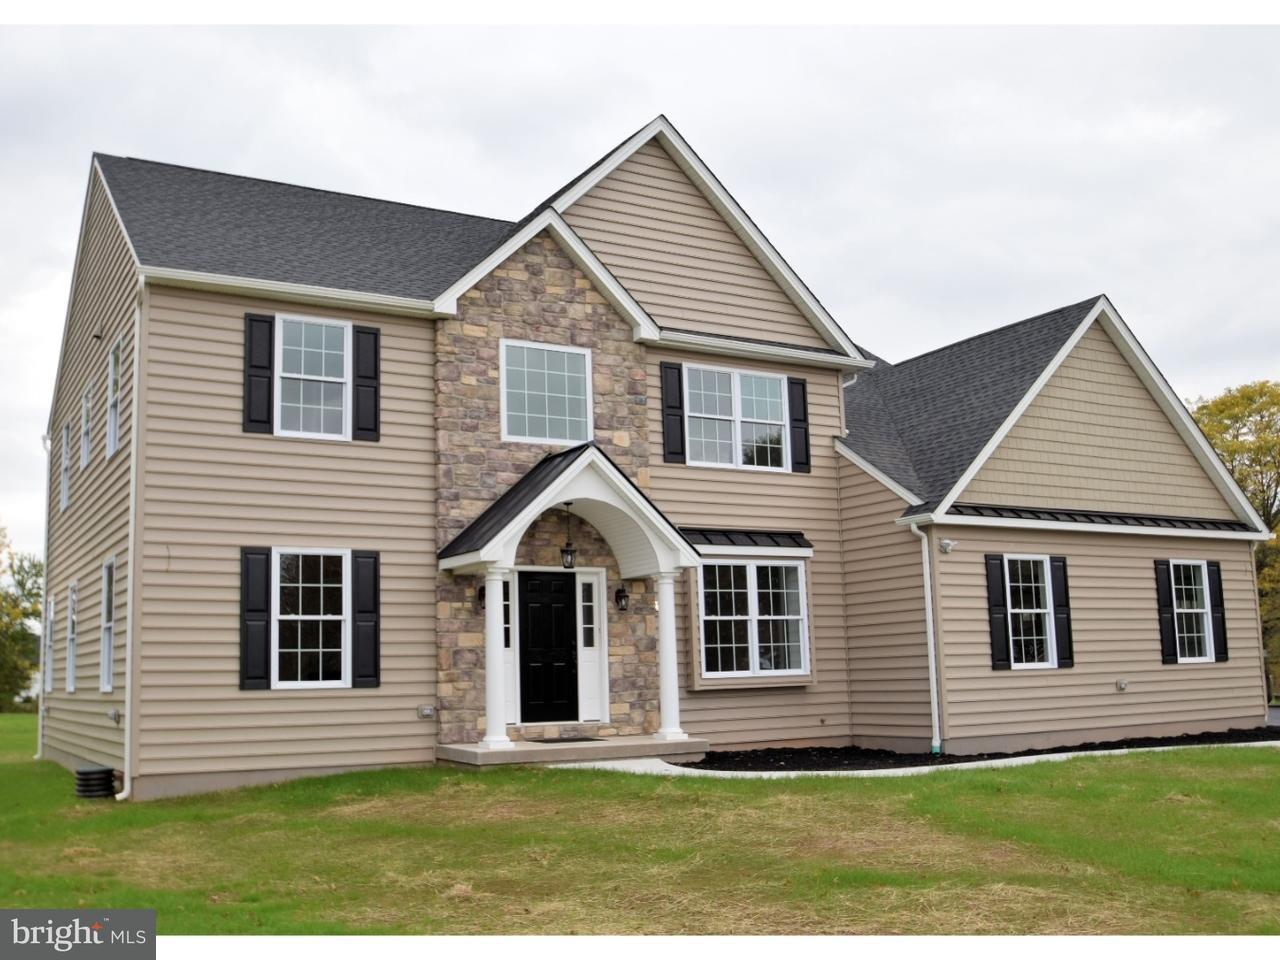 Single Family Home for Sale at 1806 FAIRGROUNDS RD #LOT #1 Hatfield, Pennsylvania 19440 United States